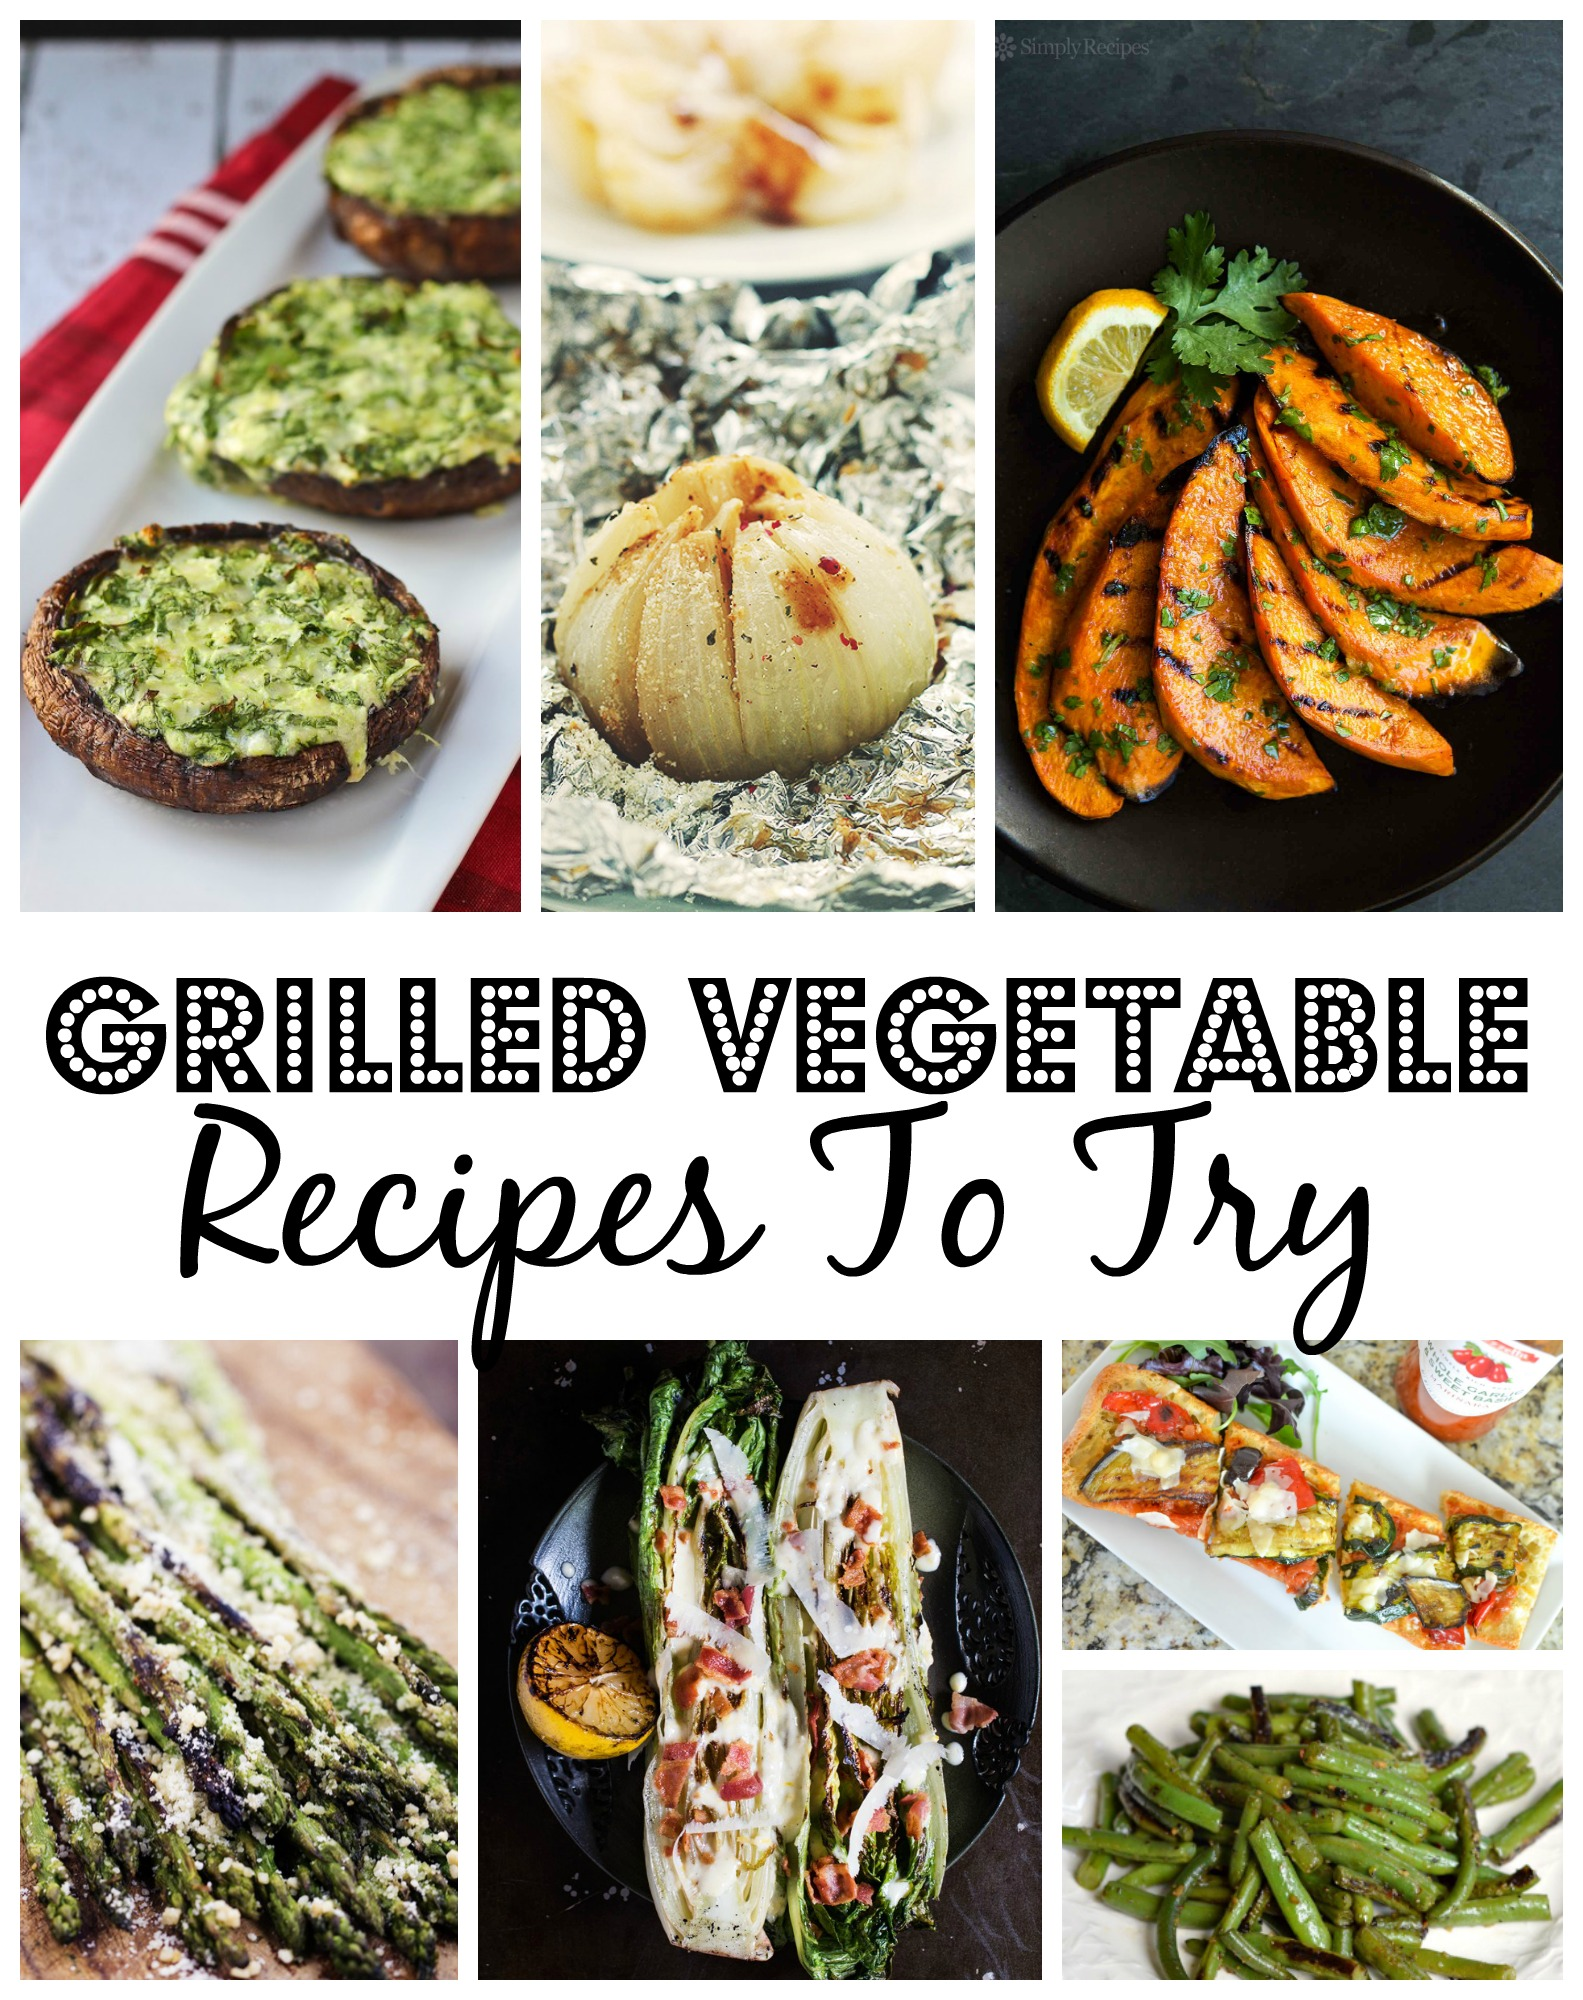 Here are just a few grilled vegetable recipes to try this summer. Enjoy!